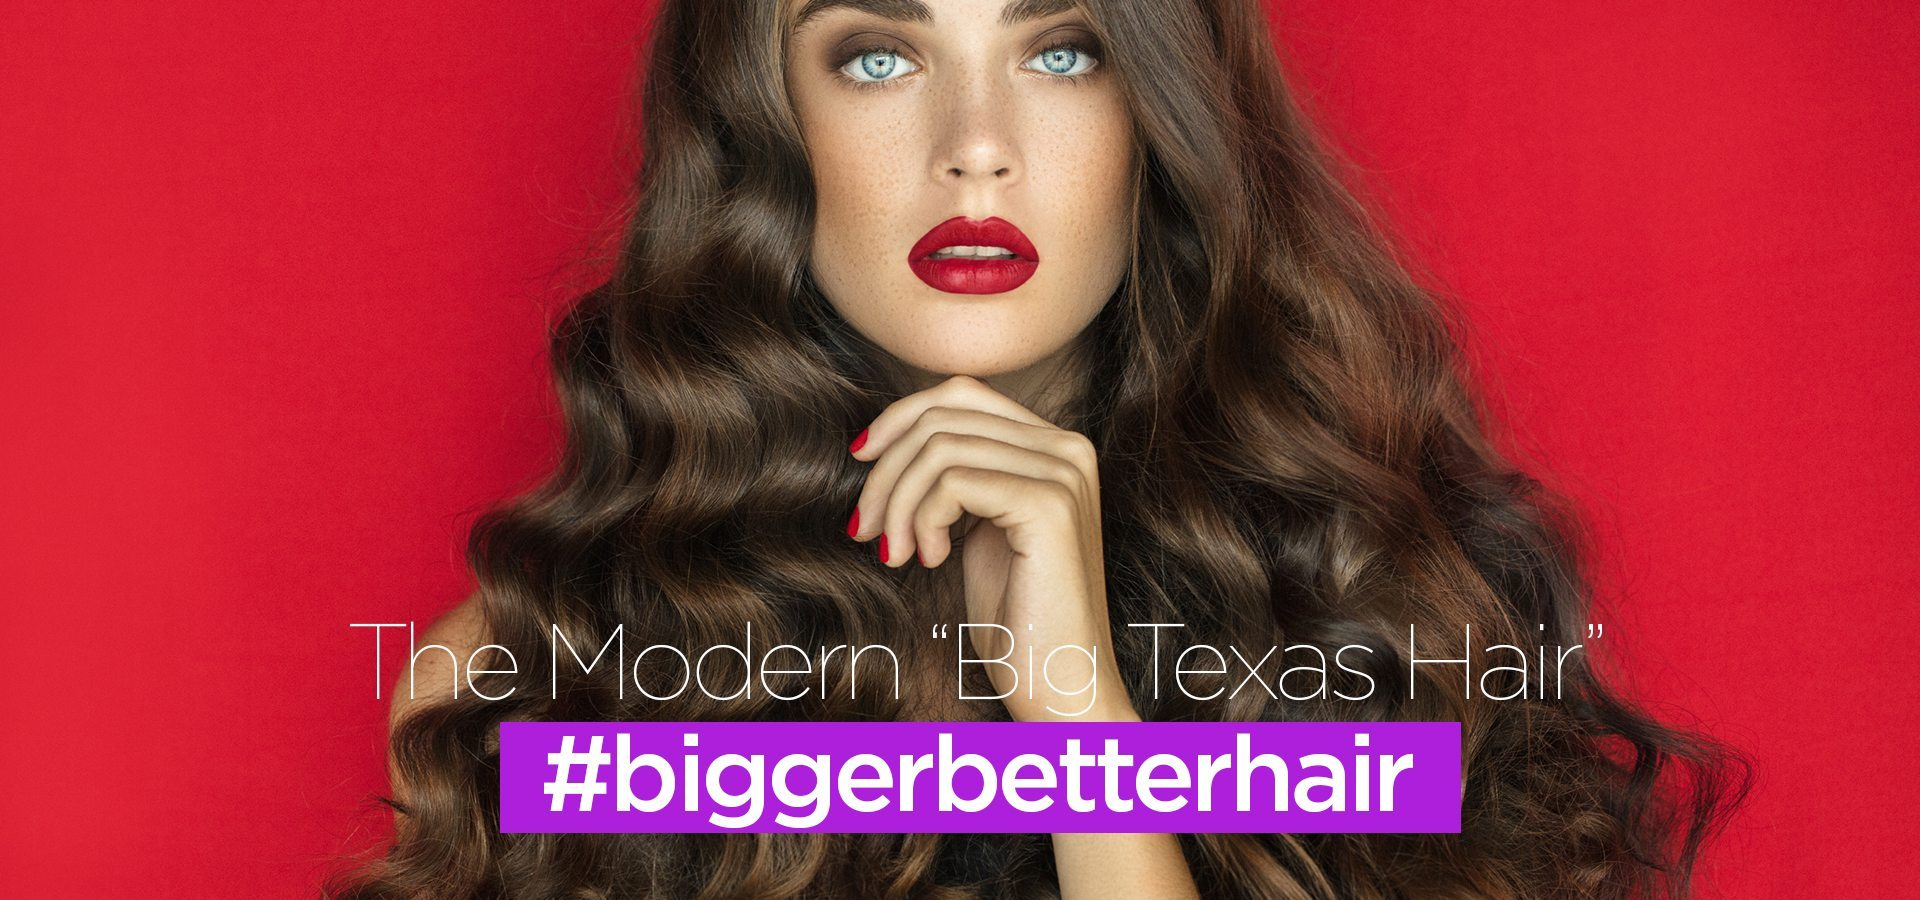 Line-1-The-Modern-Big-Texas-Hair-Line-2-biggerbetterhair-Copy